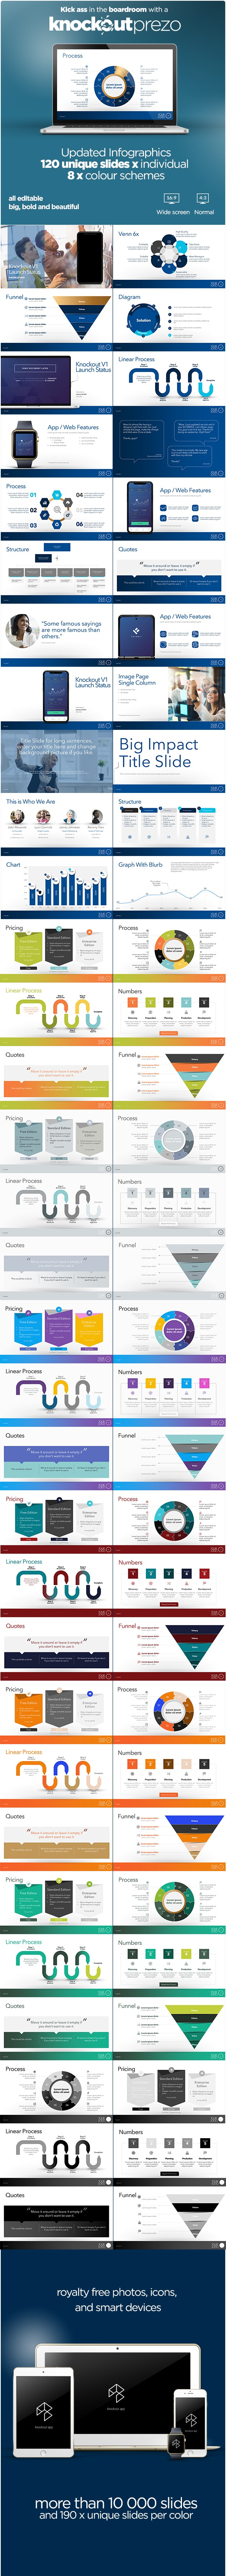 Product Pitch Slides - Business PowerPoint Templates